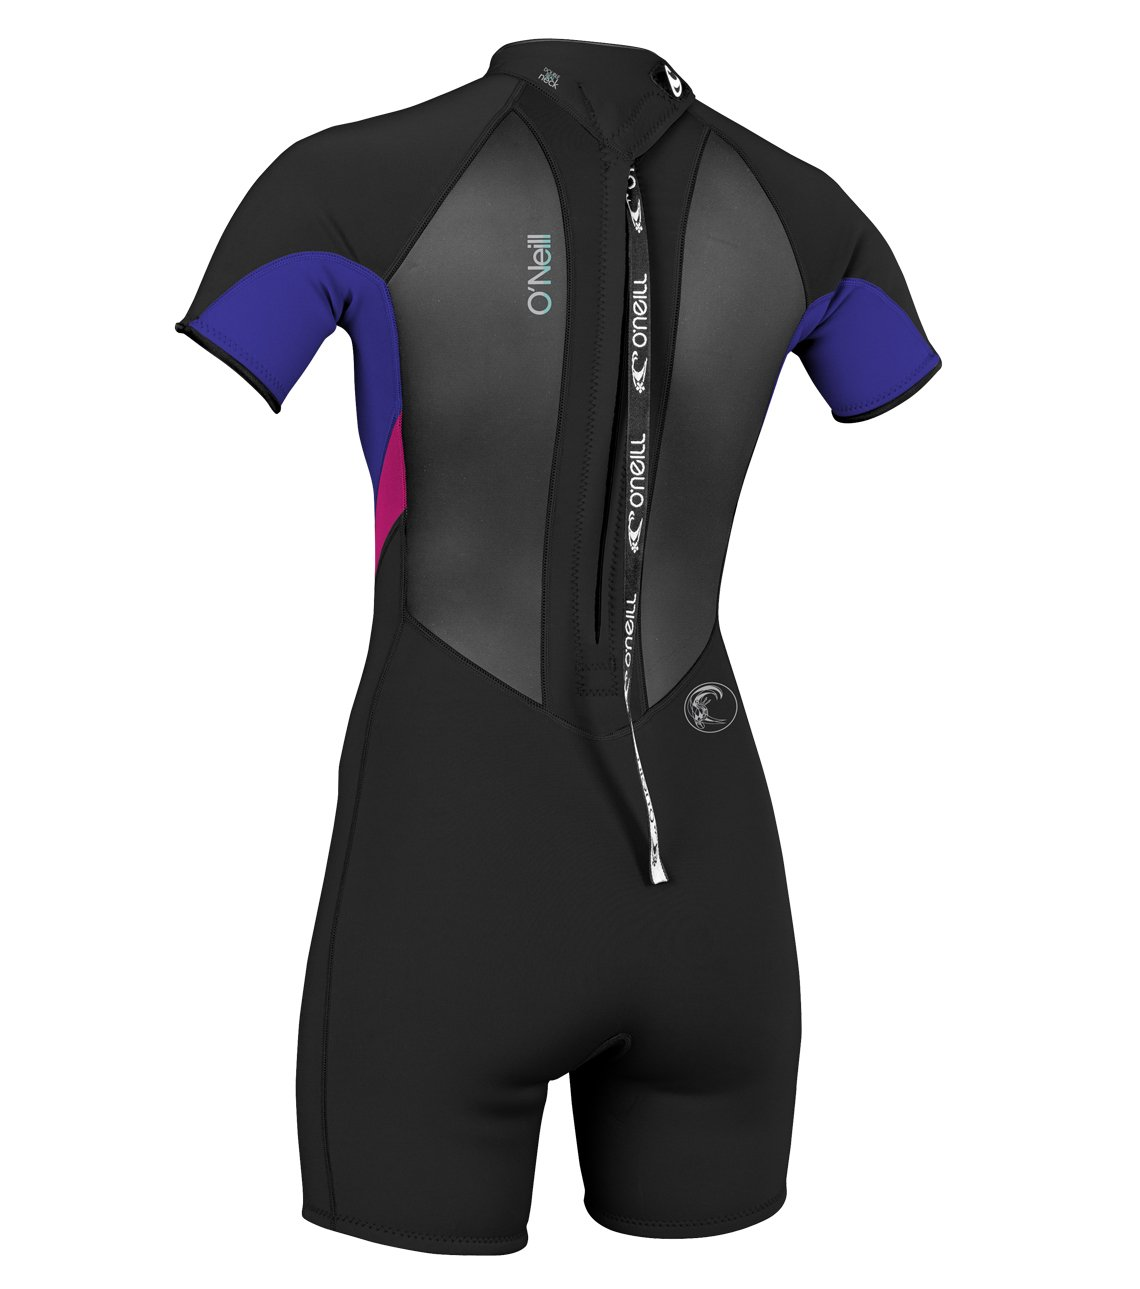 Amazon.com  O Neill Wetsuits Womens 2 1 mm Bahia Short Sleeve Spring Wetsuit   Sports   Outdoors ed140a35d